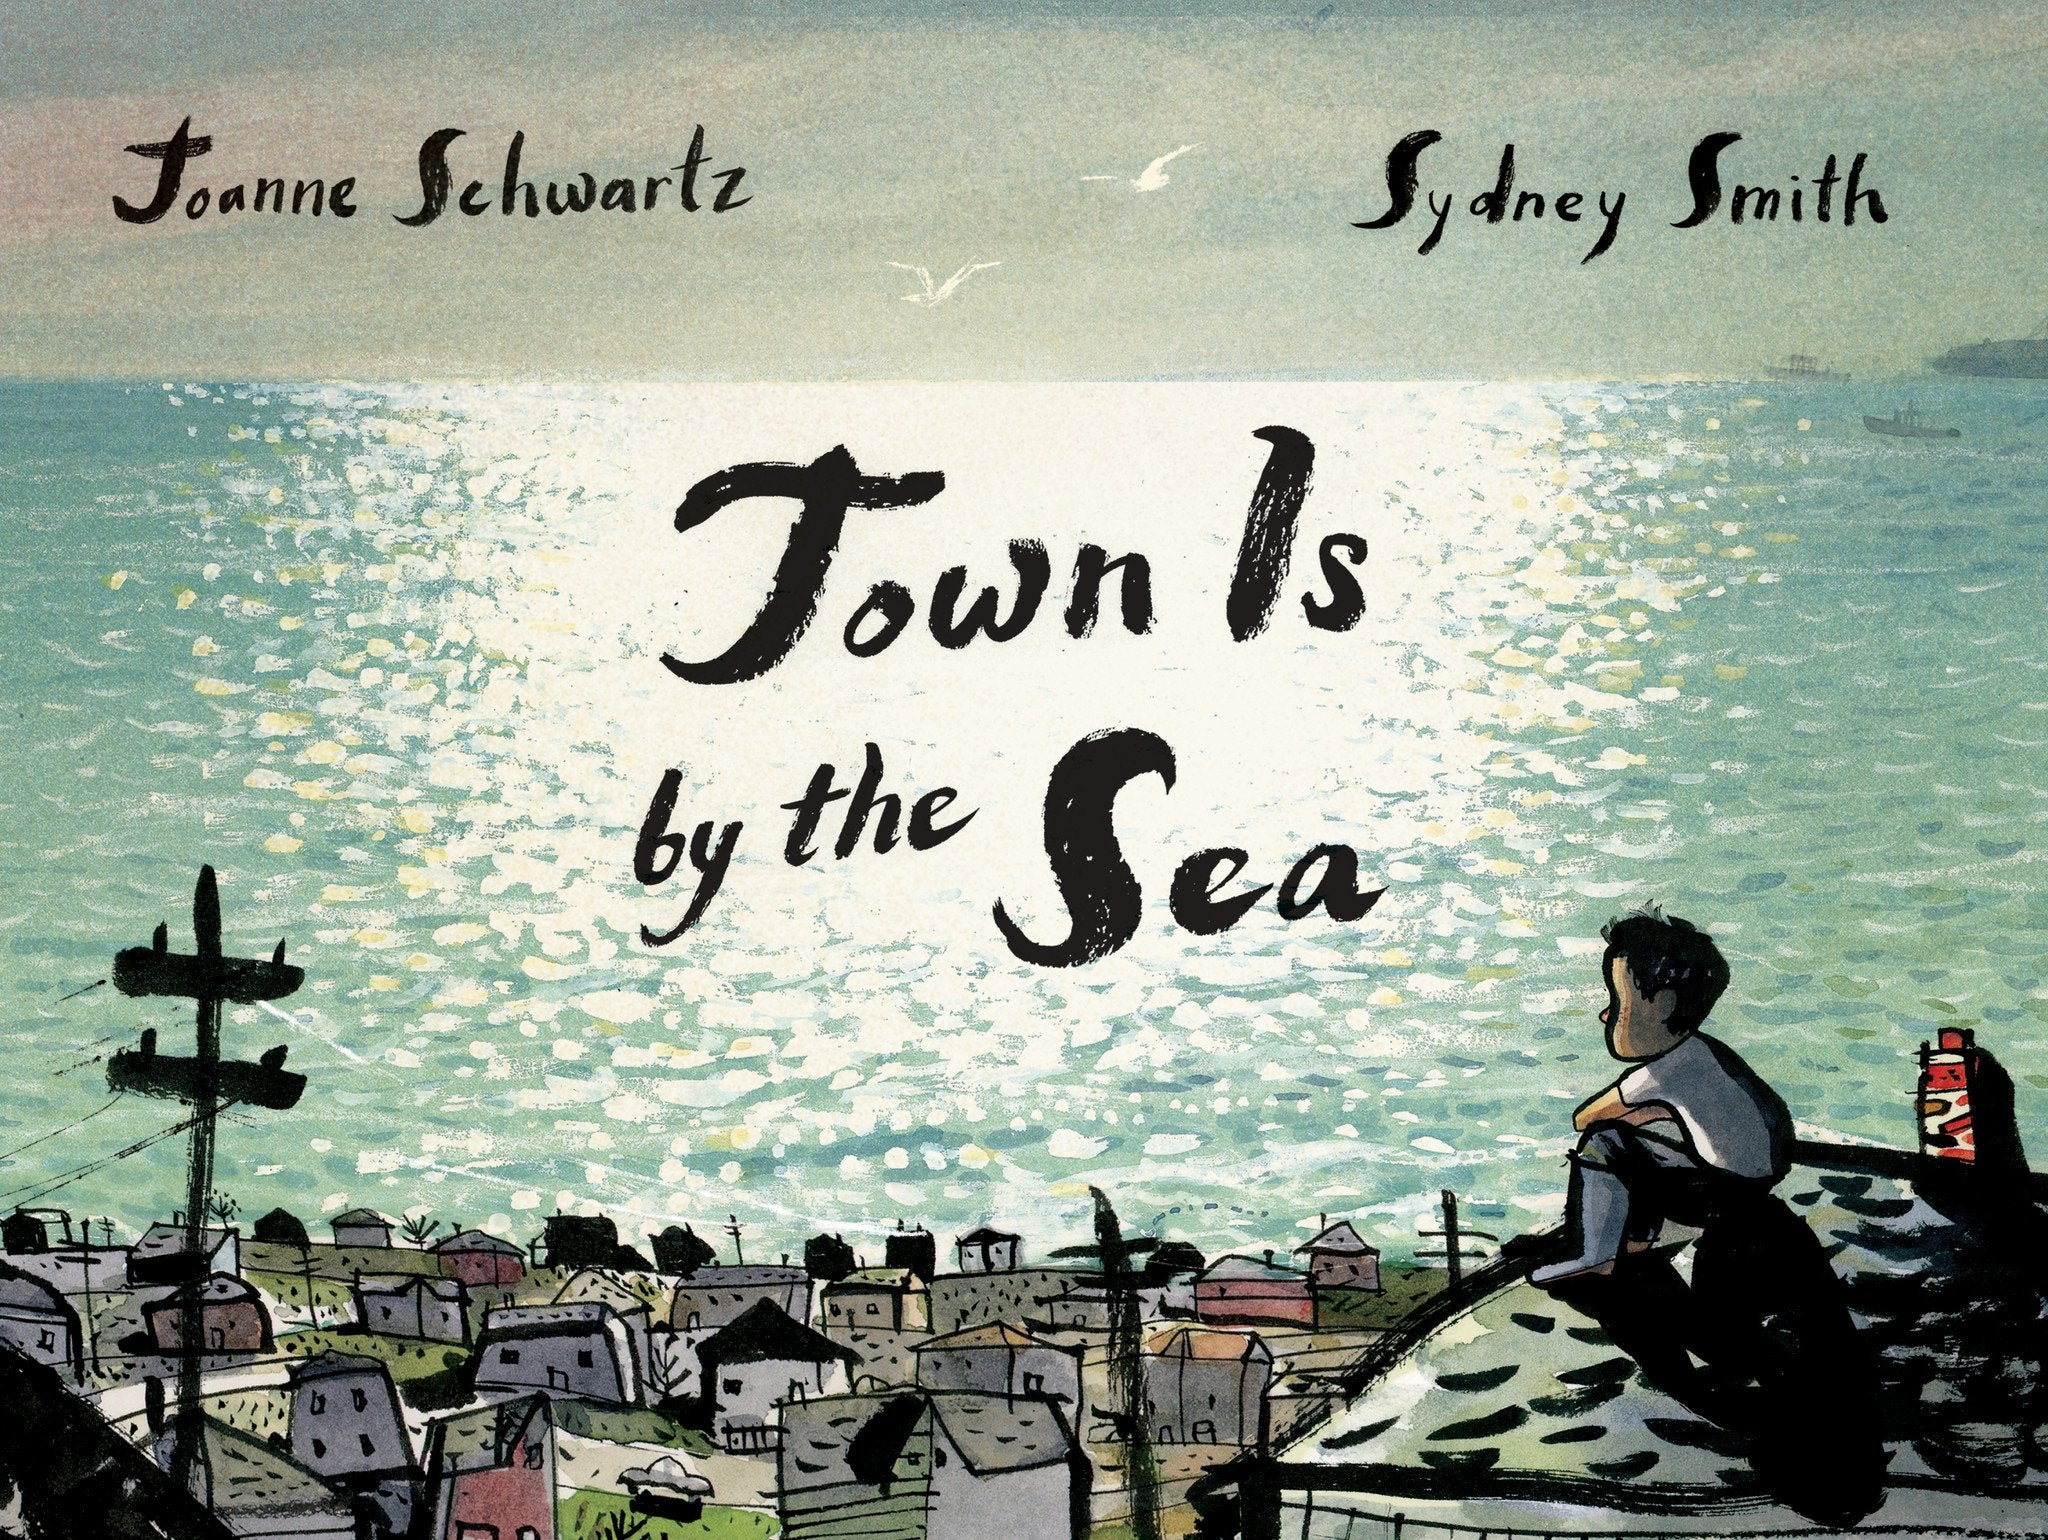 Town is By the Sea by Joanne Schwartz, illustrated by Sydney Smith